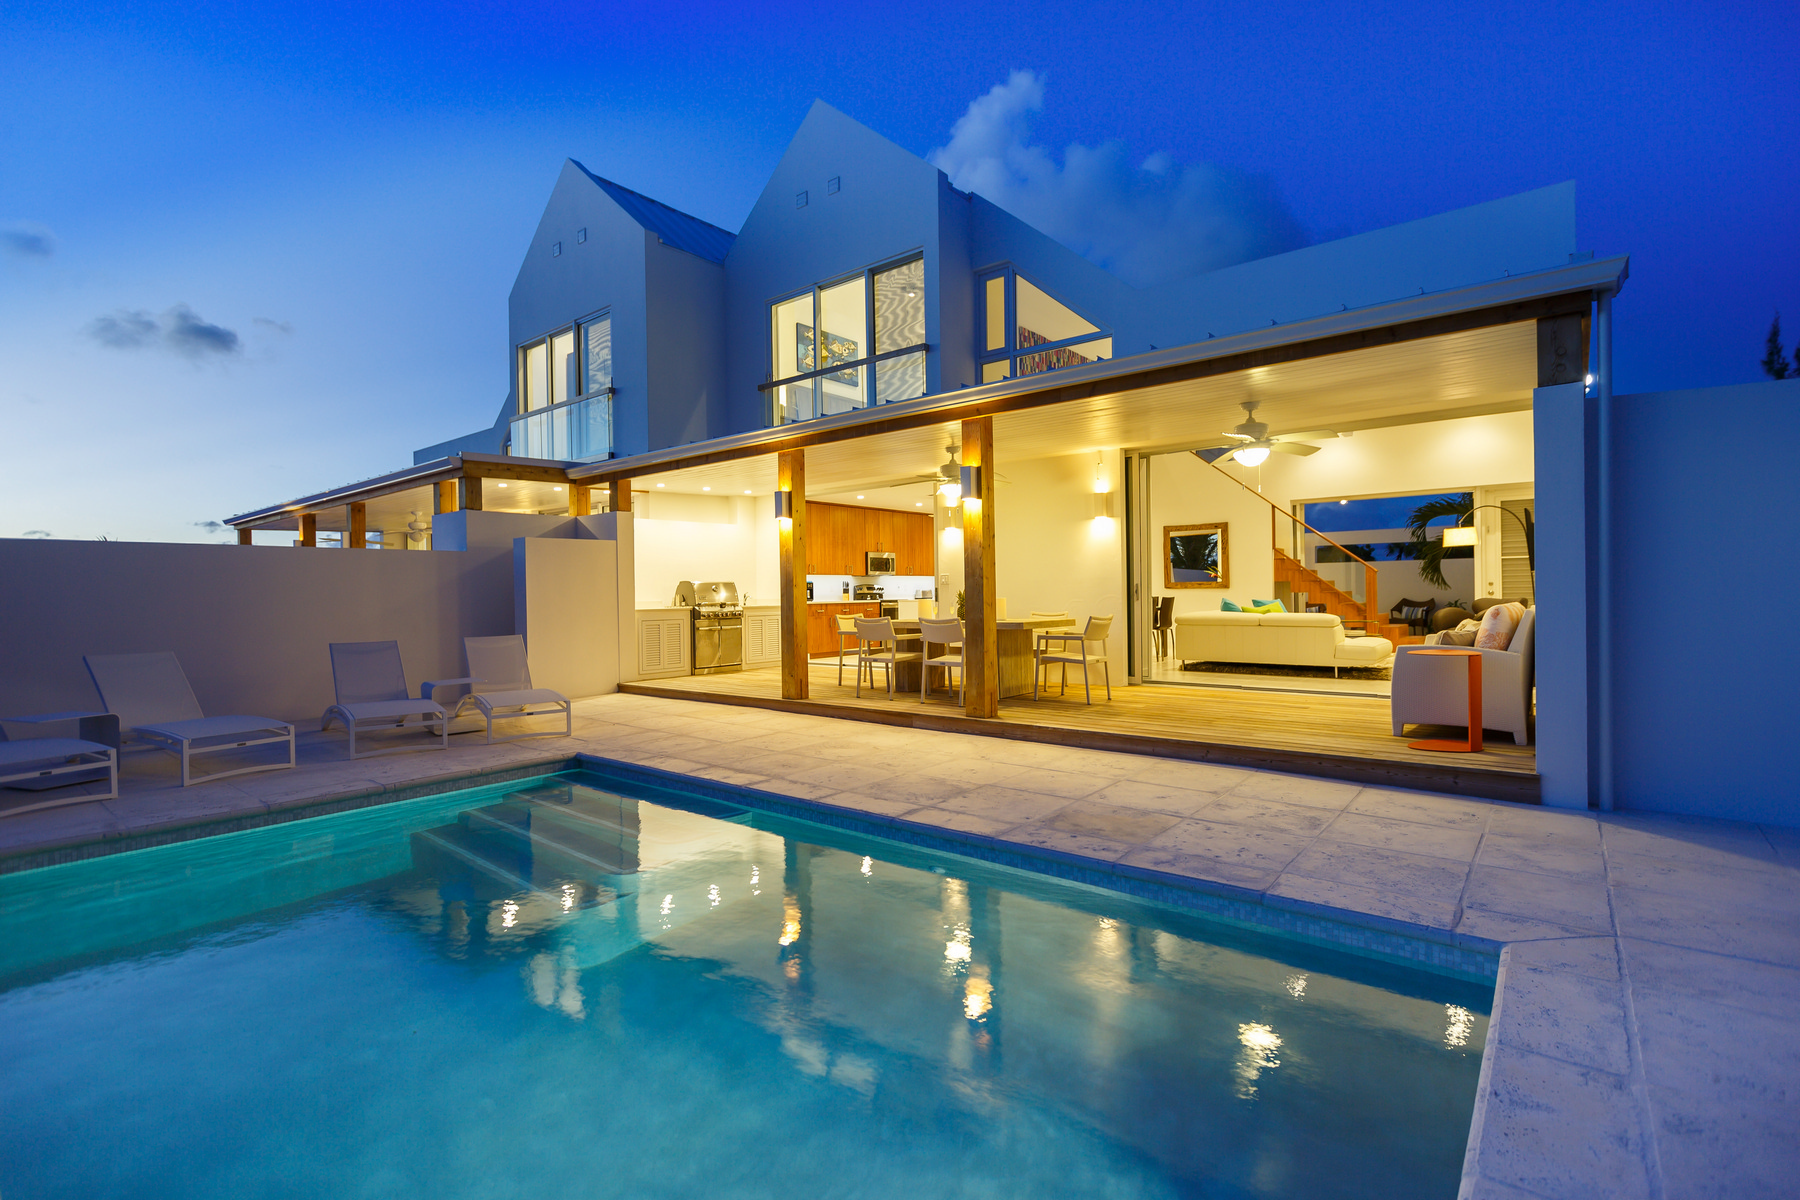 Single Family Home for Sale at Sunset Beach Villas - Design A Gardenview Leeward, Providenciales, TC Turks And Caicos Islands